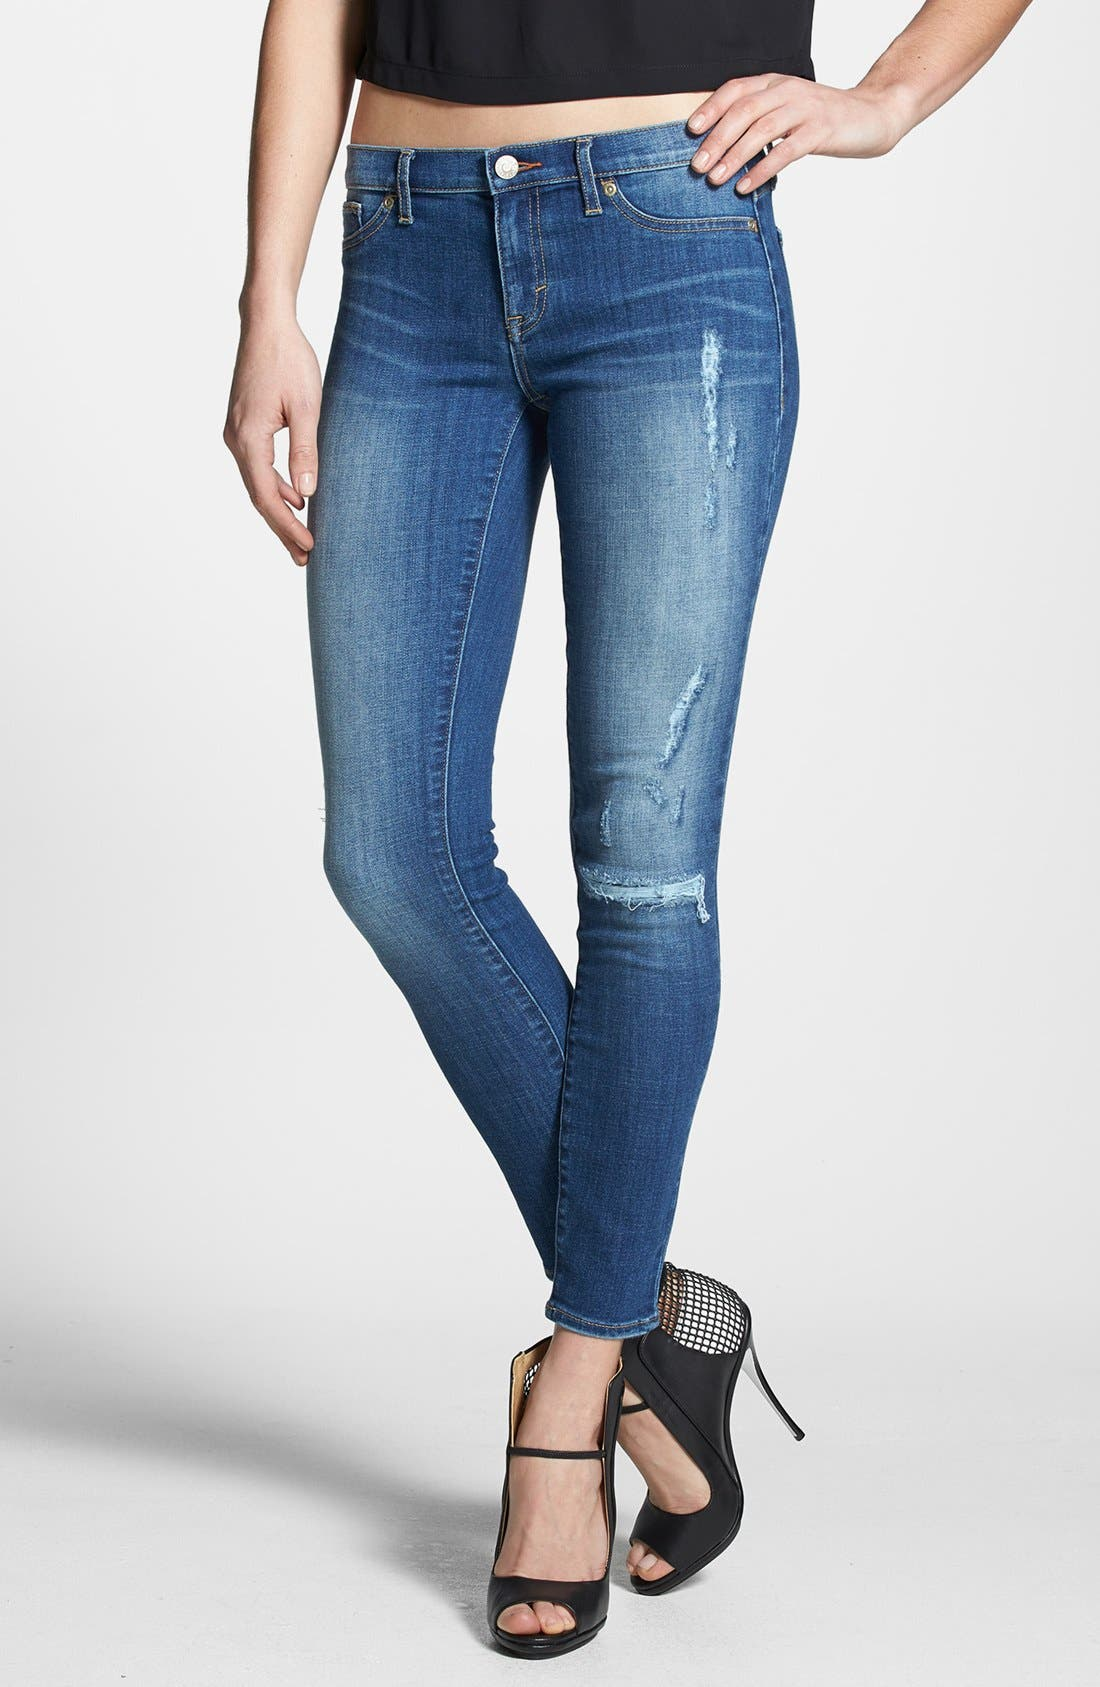 Alternate Image 1 Selected - Dittos 'Jessica' Distressed Low Rise Skinny Jeans (Calypso)